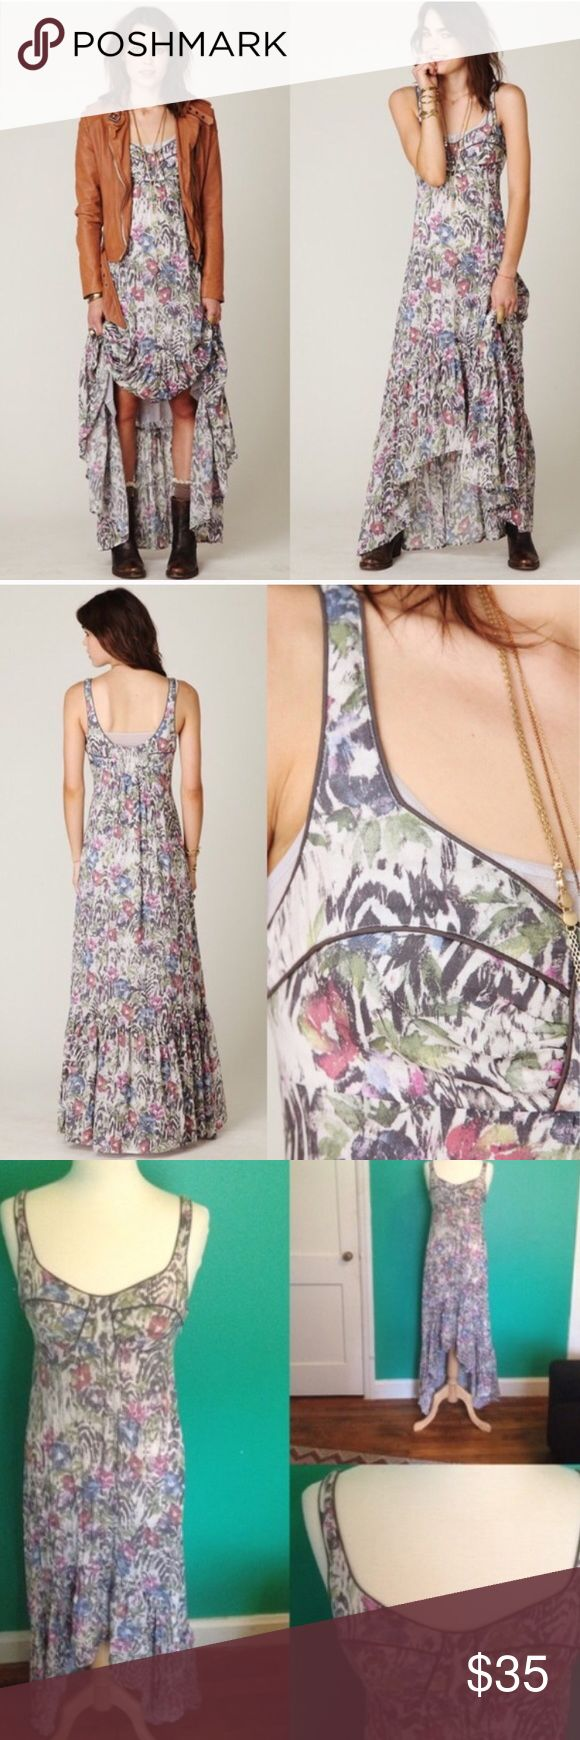 Free people hi low maxi dress Bias cut maxi dress with beautiful floral print and piping detailing on the bust. Smocking in the back. High low hem. Lightweight float fabric. Tag was removed but it is a size small. Zipper closure. Free People Dresses Maxi